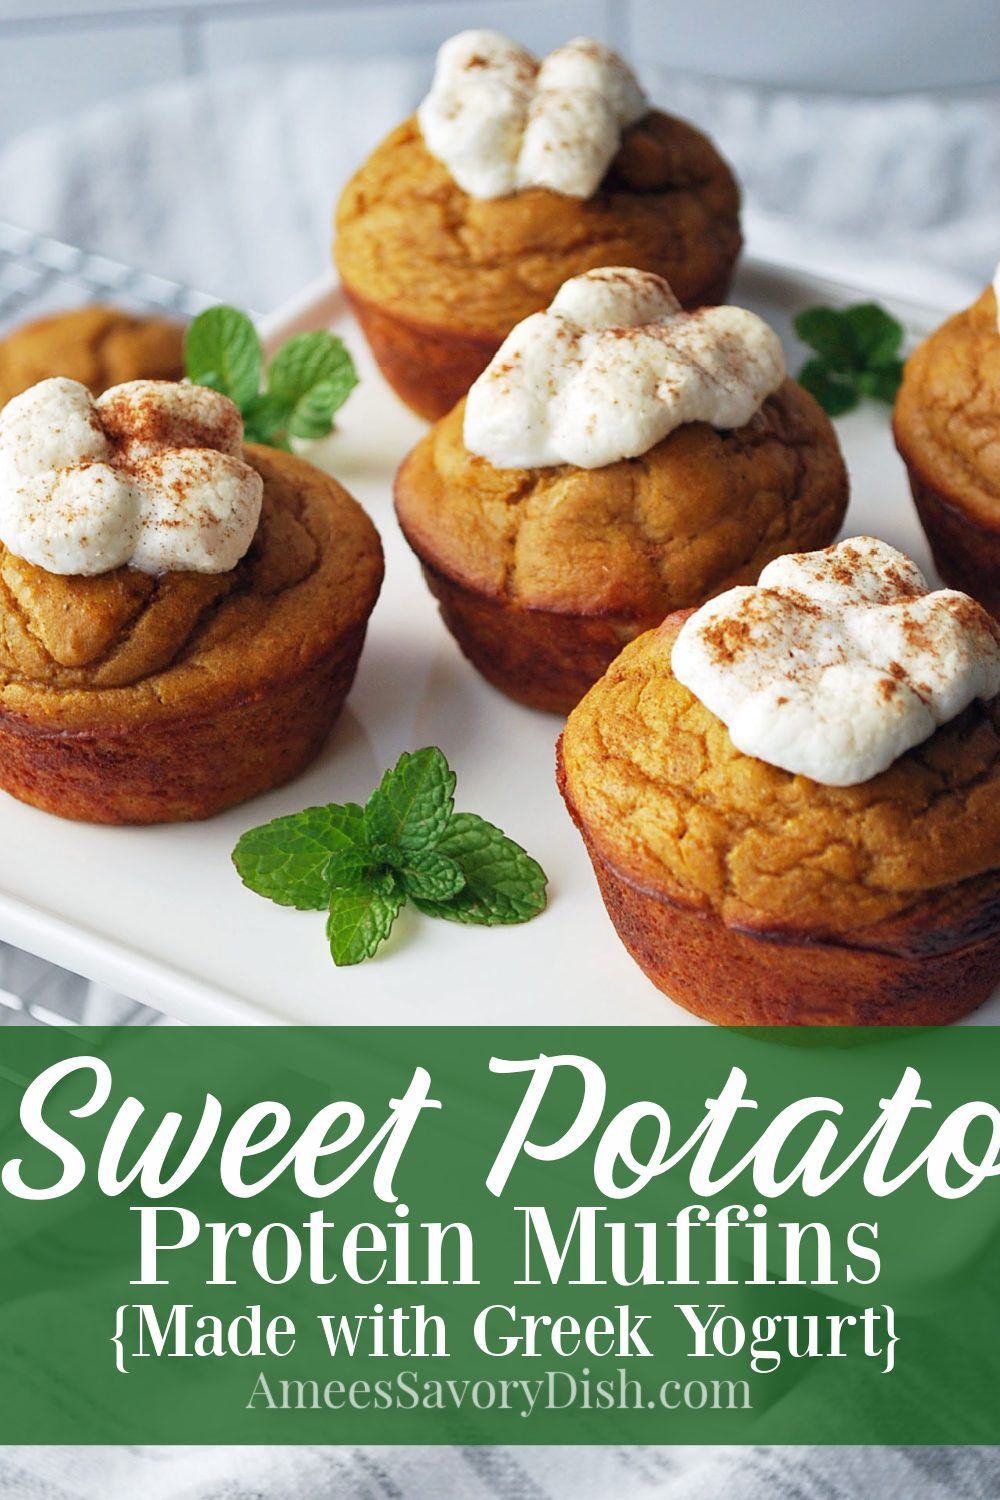 A high-protein, gluten-free sweet potato muffin recipe that turns out fluffy and moist with no compromise in taste or texture. The best part of this recipe is that the batter is whipped up in a blender in less than 5 minutes!#sweetpotatomuffins #proteinmuffins #muffinsrecipe #healthymuffins via @Ameessavorydish